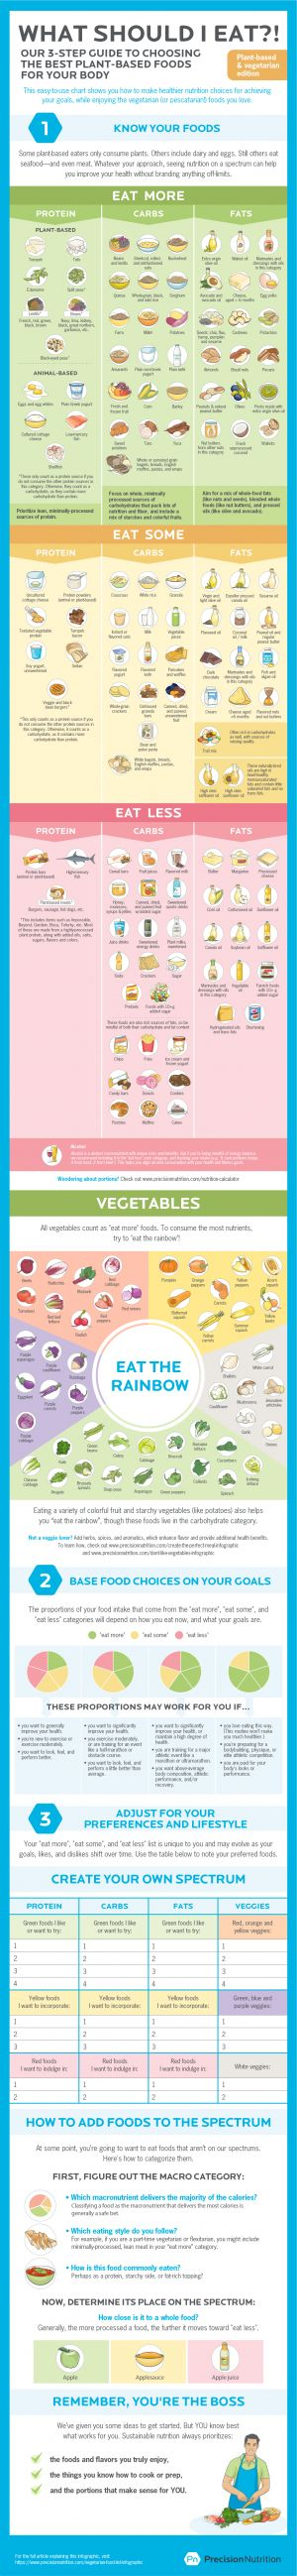 'What should I eat?!' How to choose the best vegetarian and plant-based foods for your body